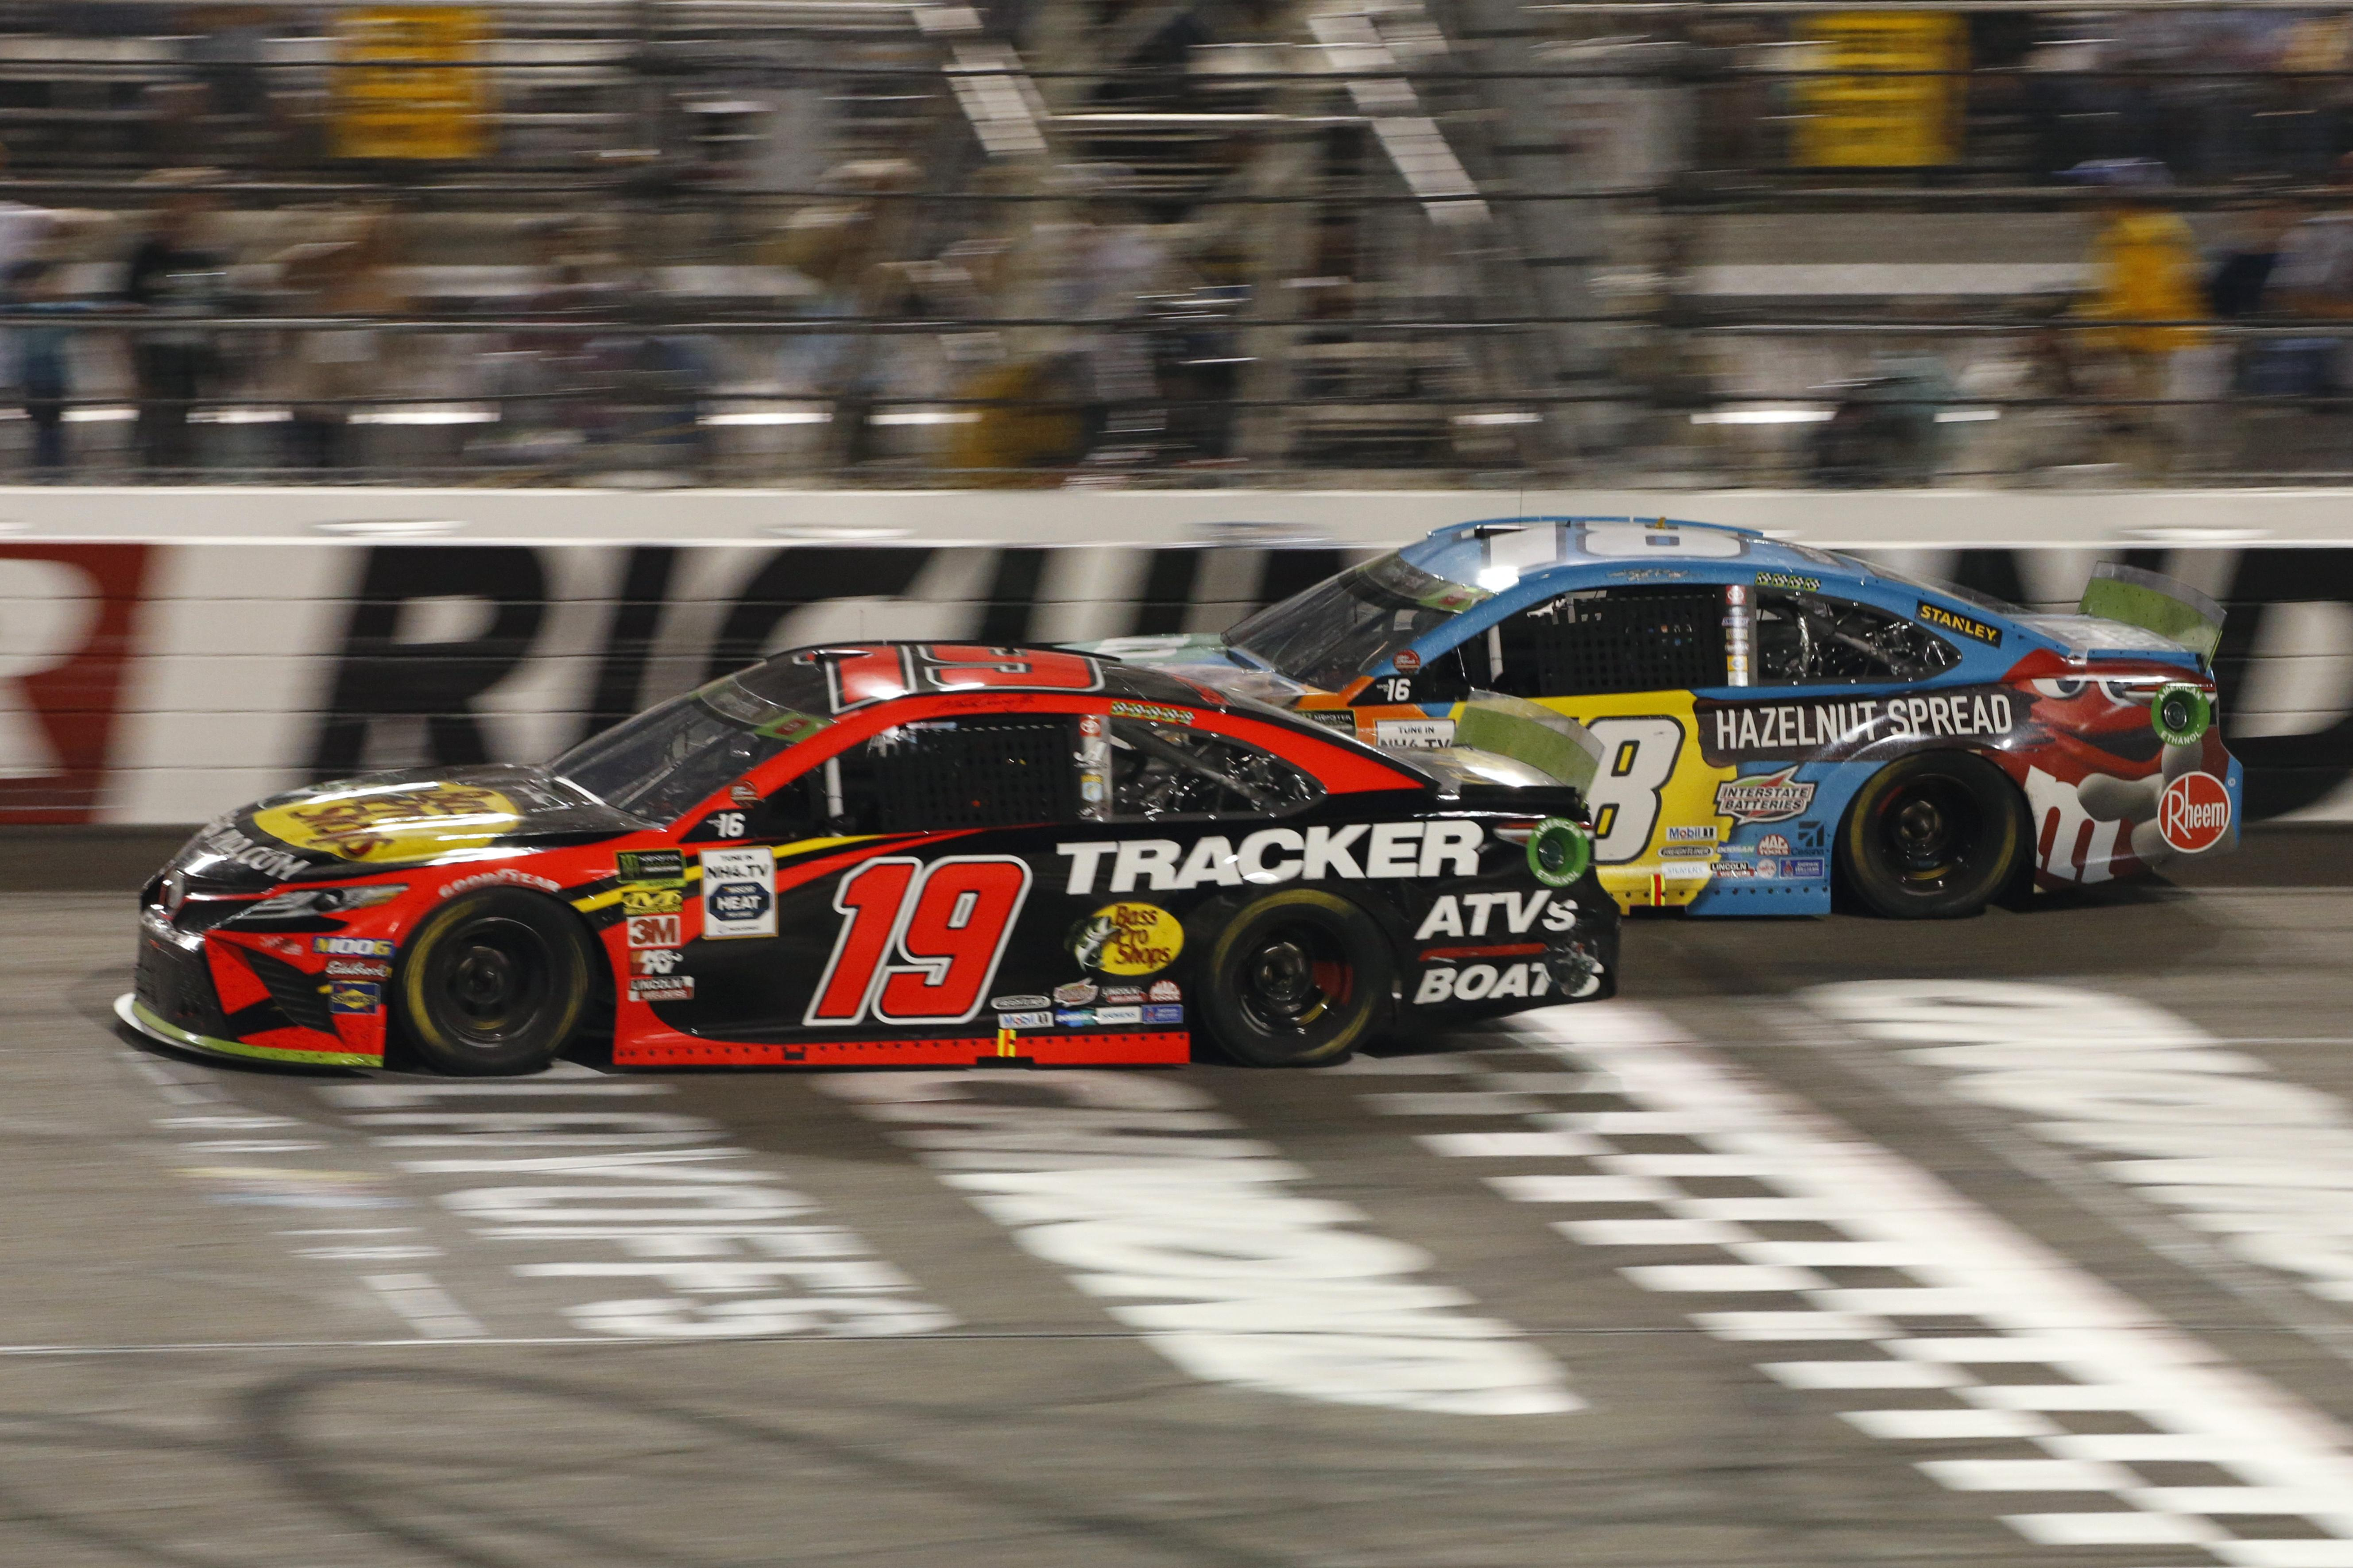 Truex wins again at Richmond; Gibbs's Jones disqualified